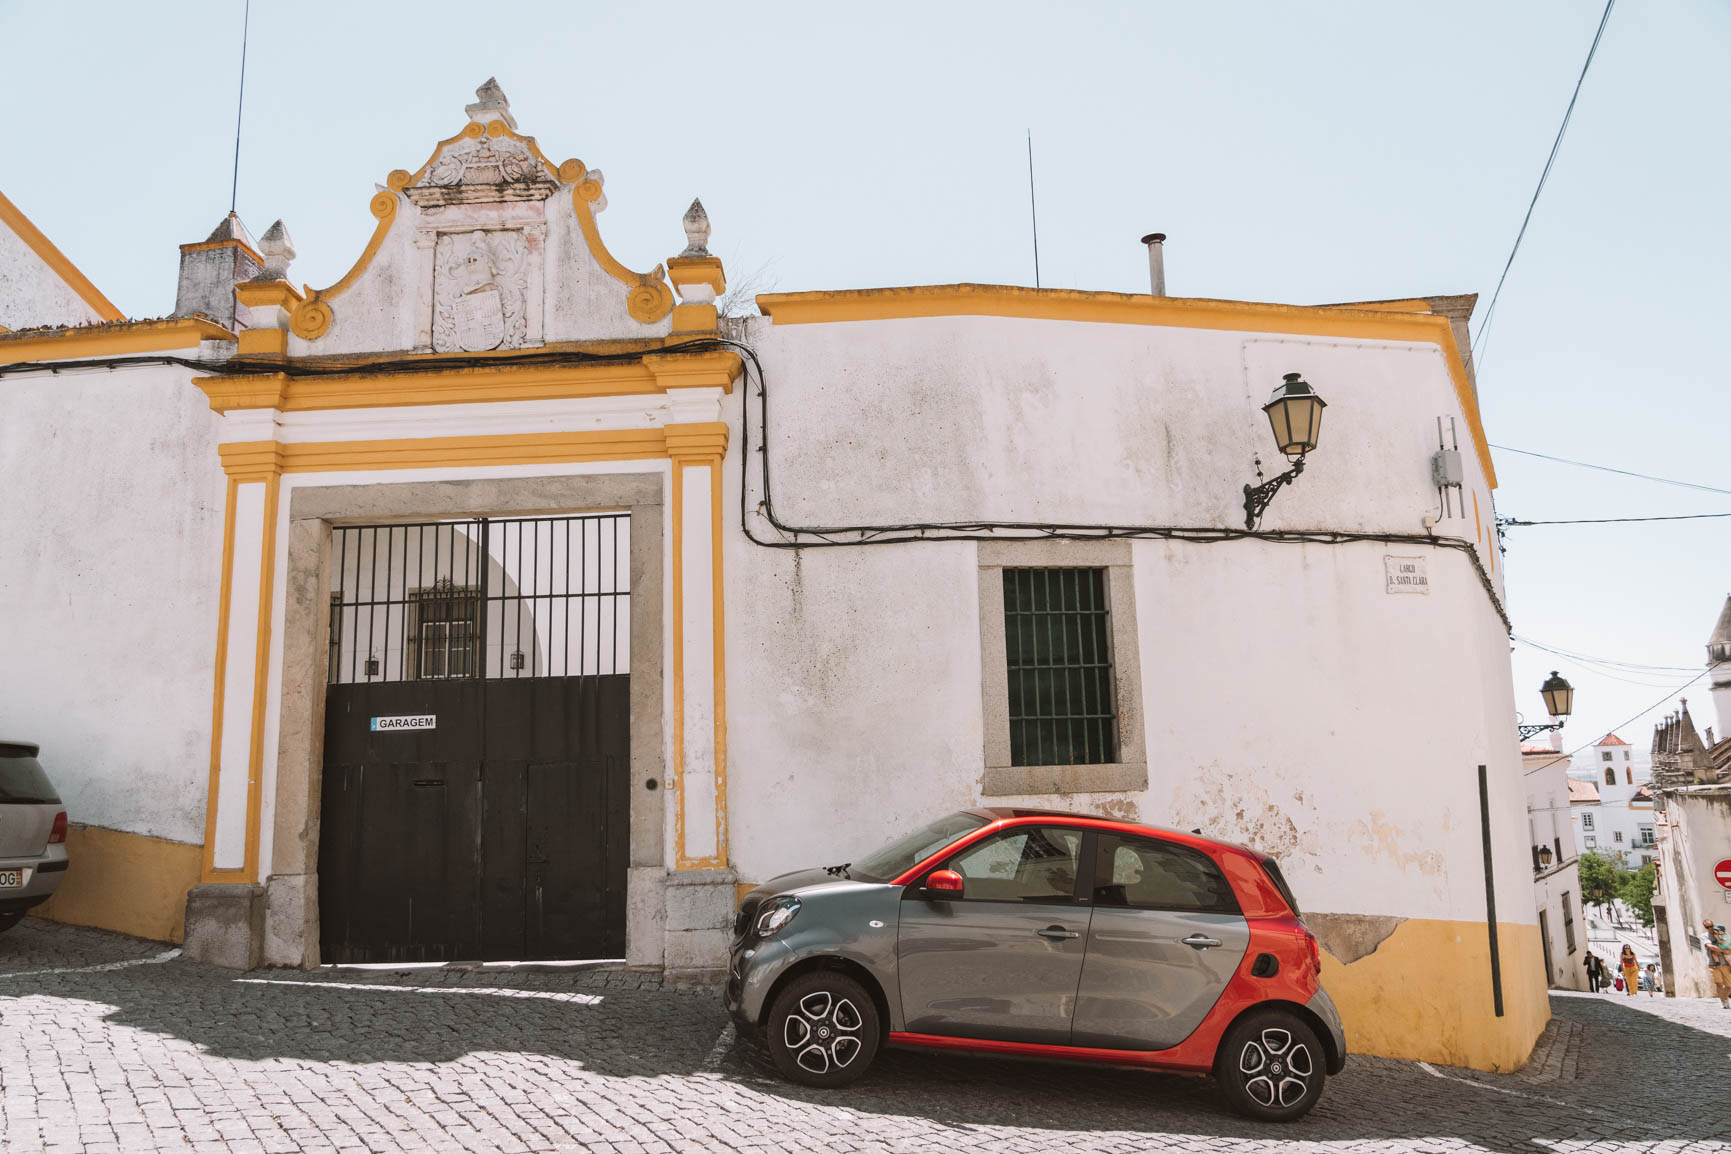 Driving and renting a car in Portugal